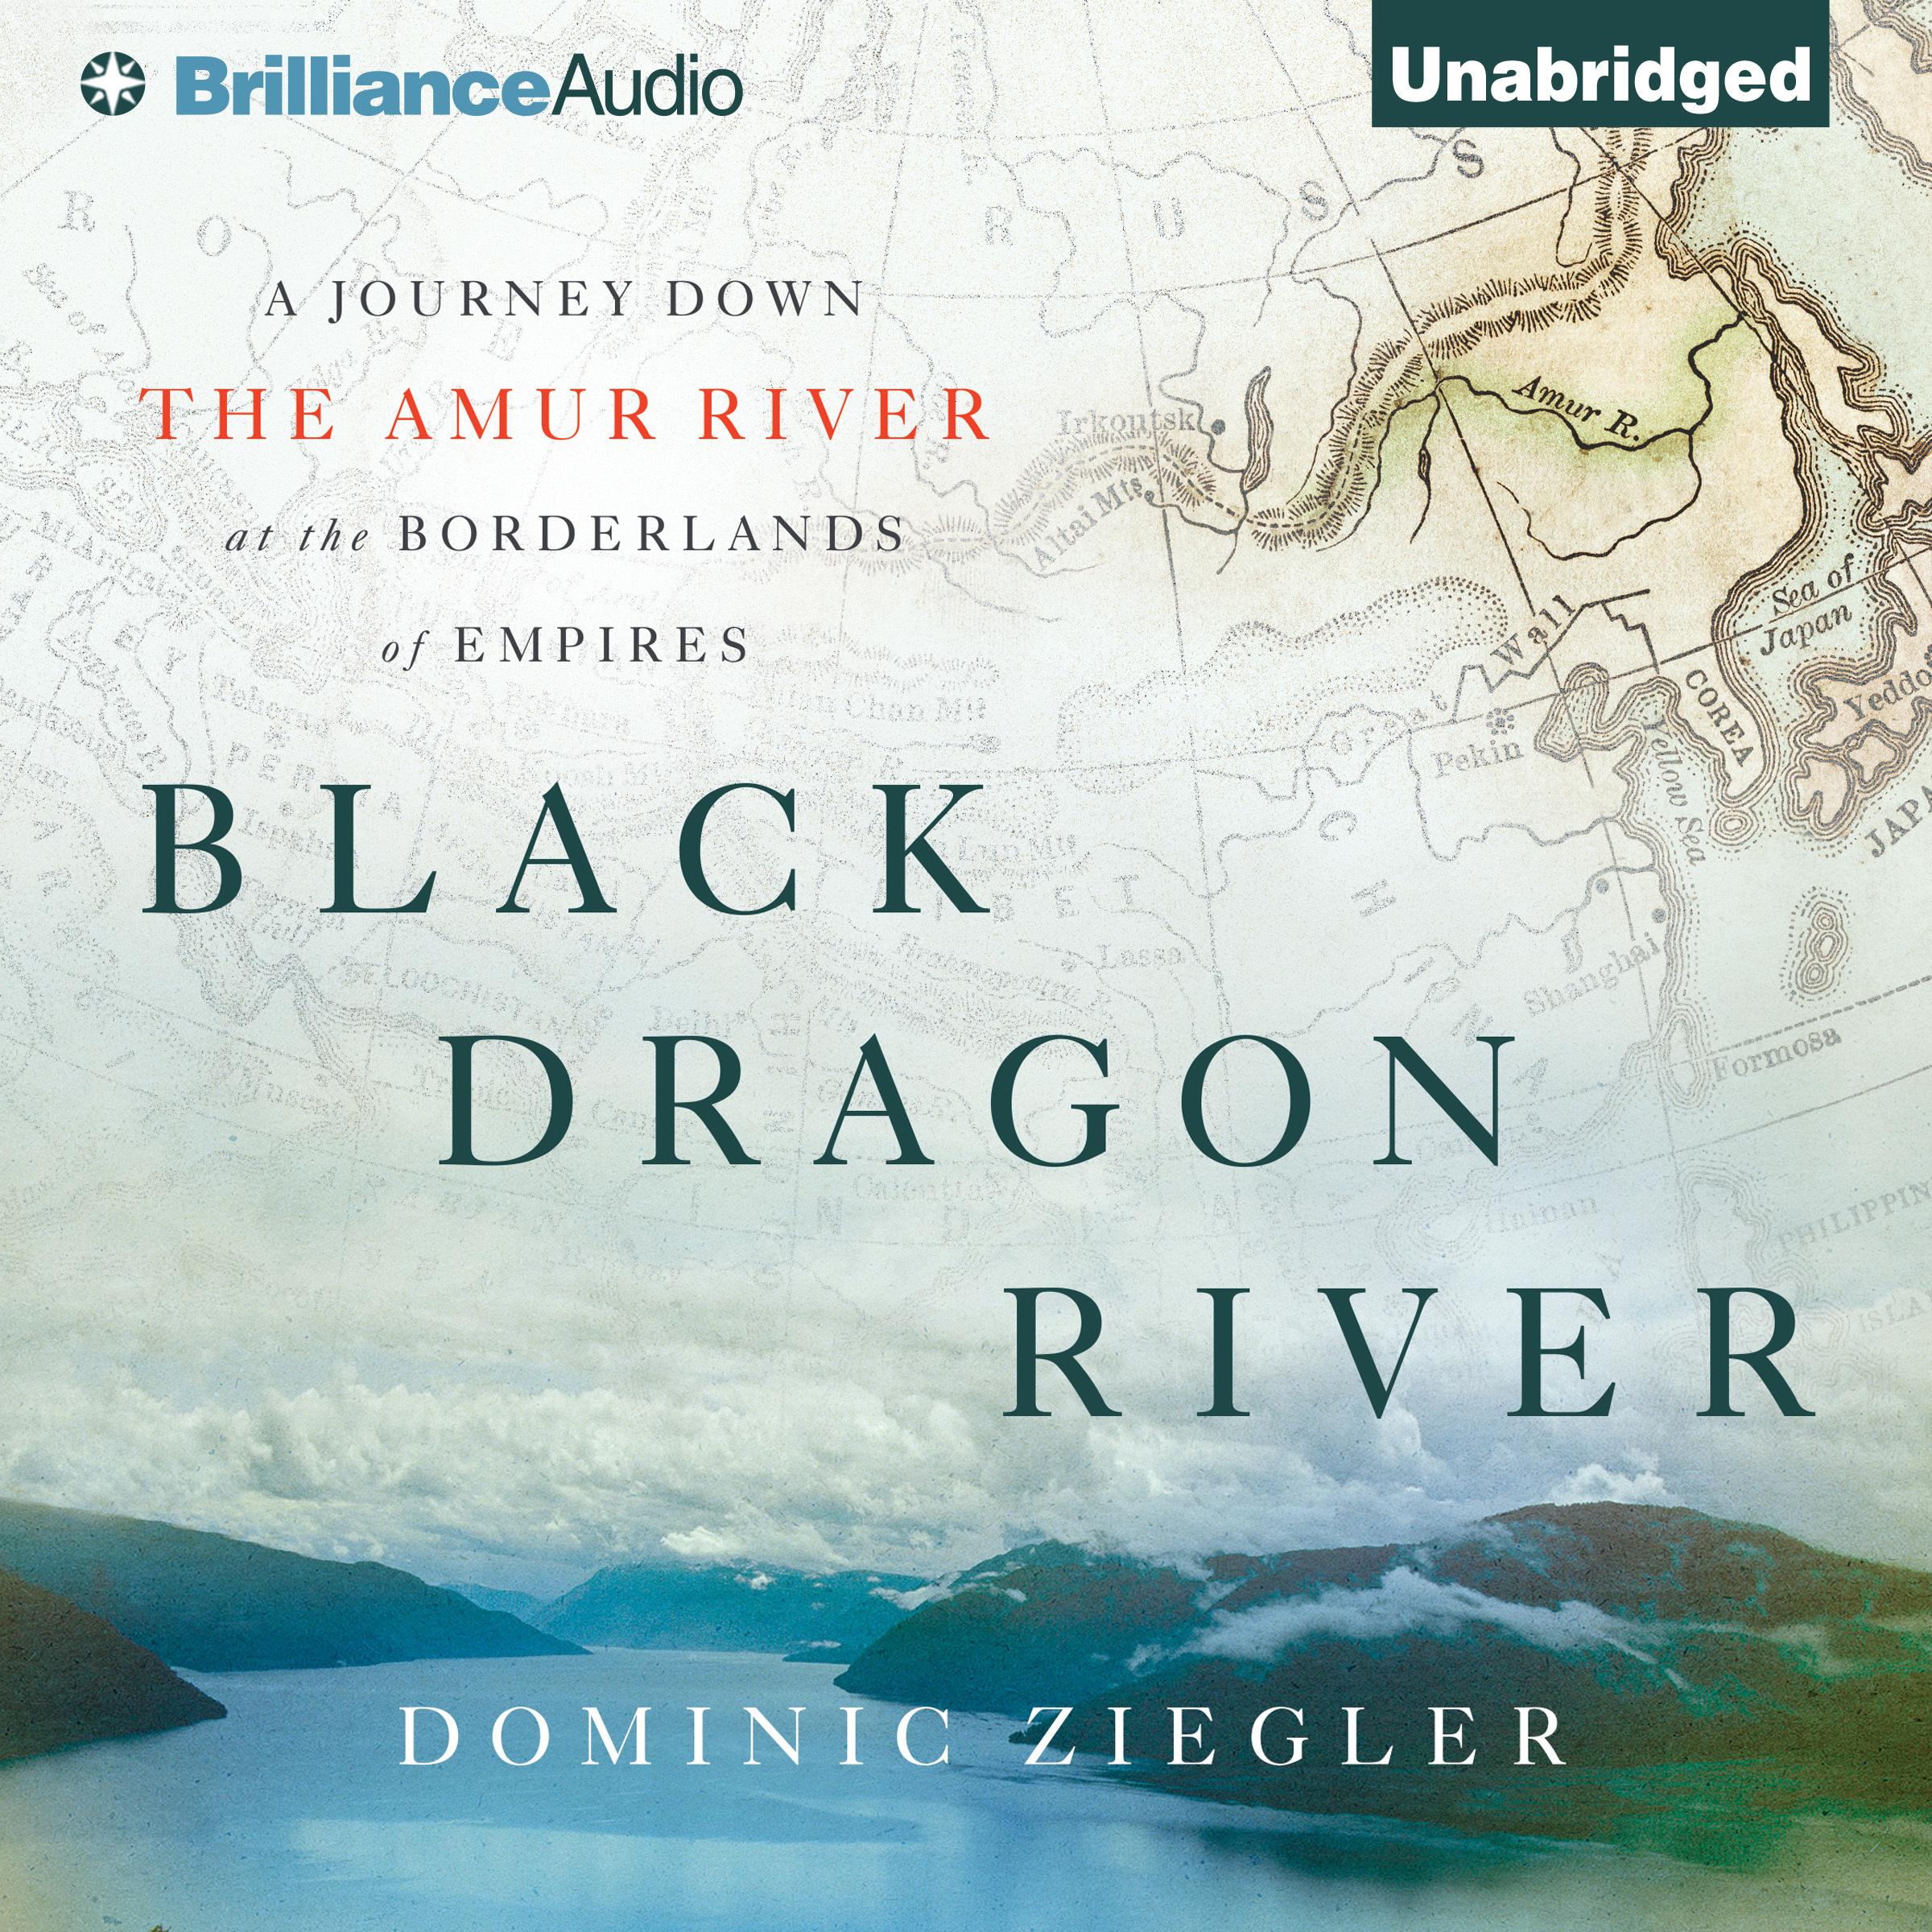 Printable Black Dragon River: A Journey Down the Amur River at the Borderlands of Empires Audiobook Cover Art